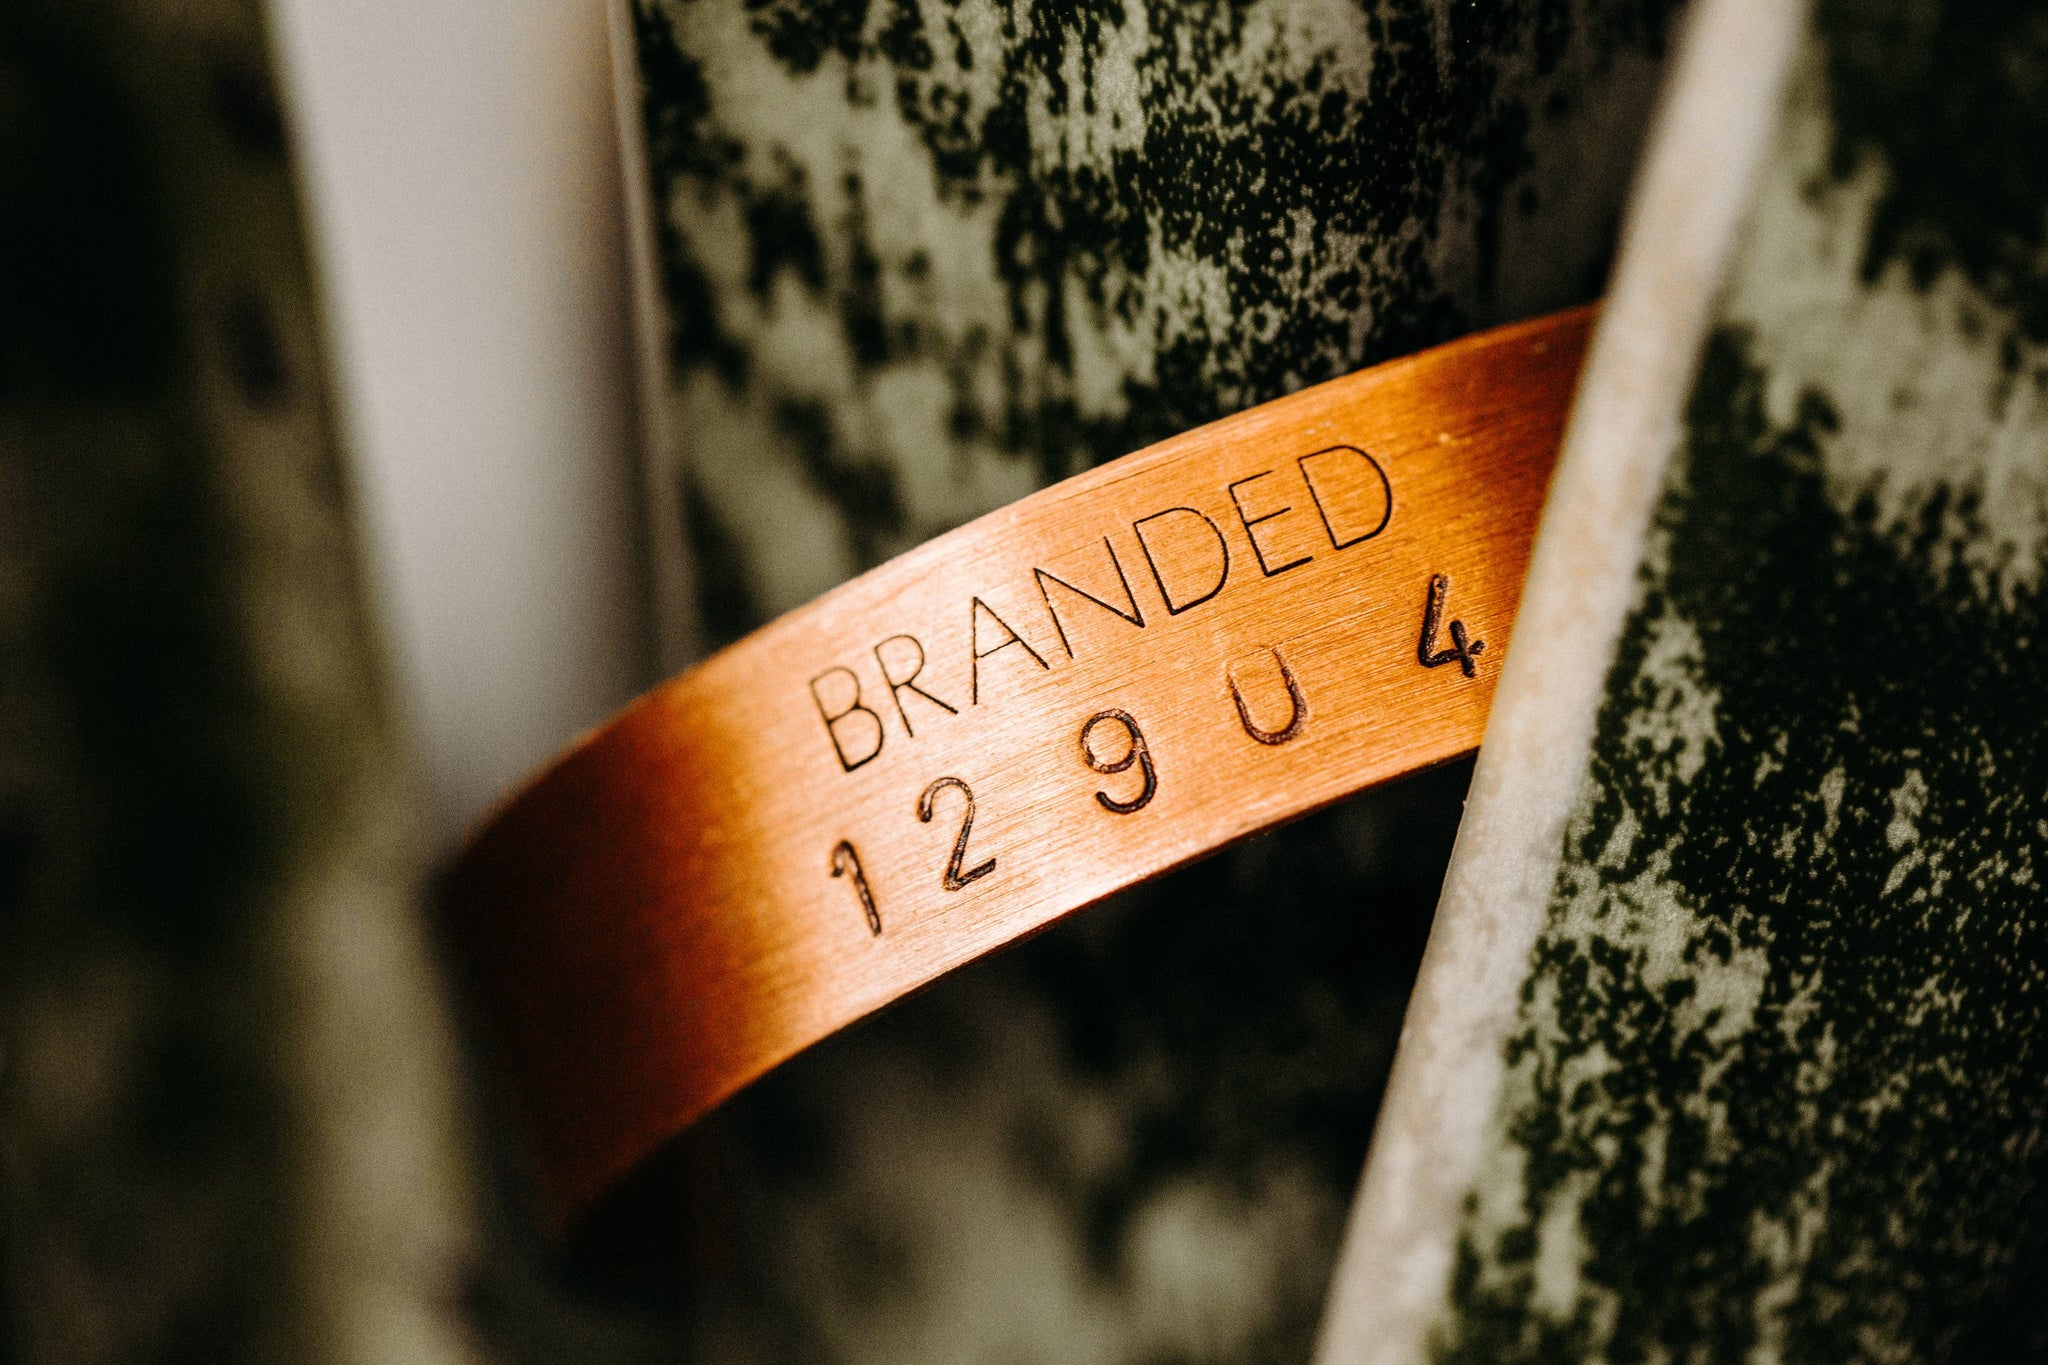 Featured Artisan: BRANDED Collective